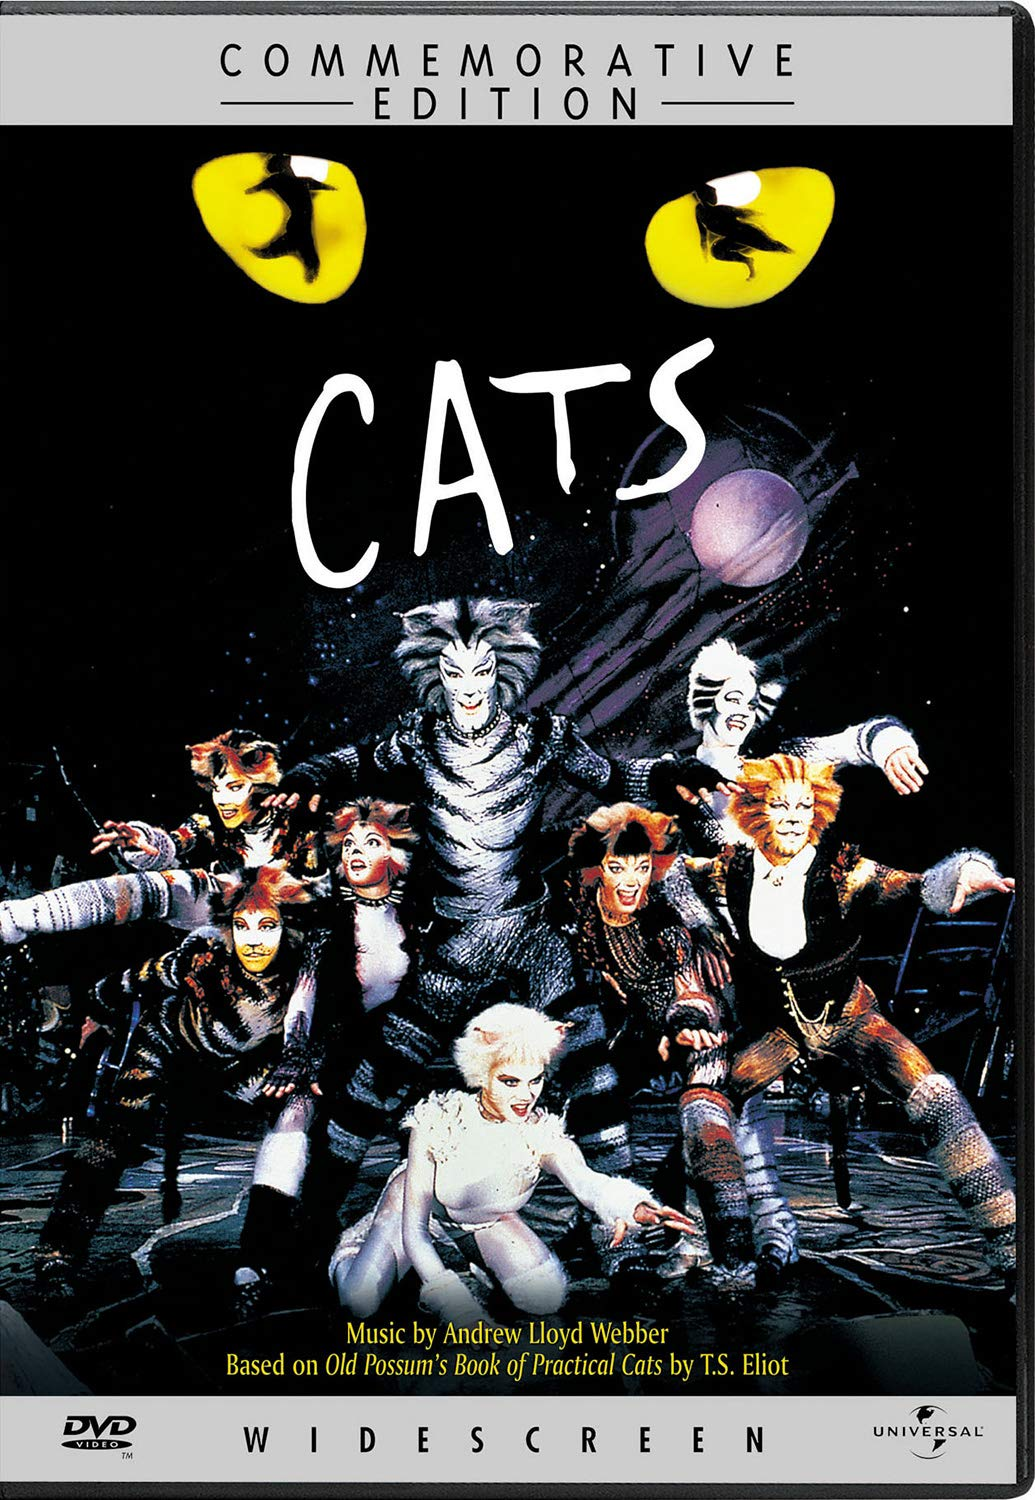 Amazon.com: Cats: The Musical (Commemorative Edition): David ...